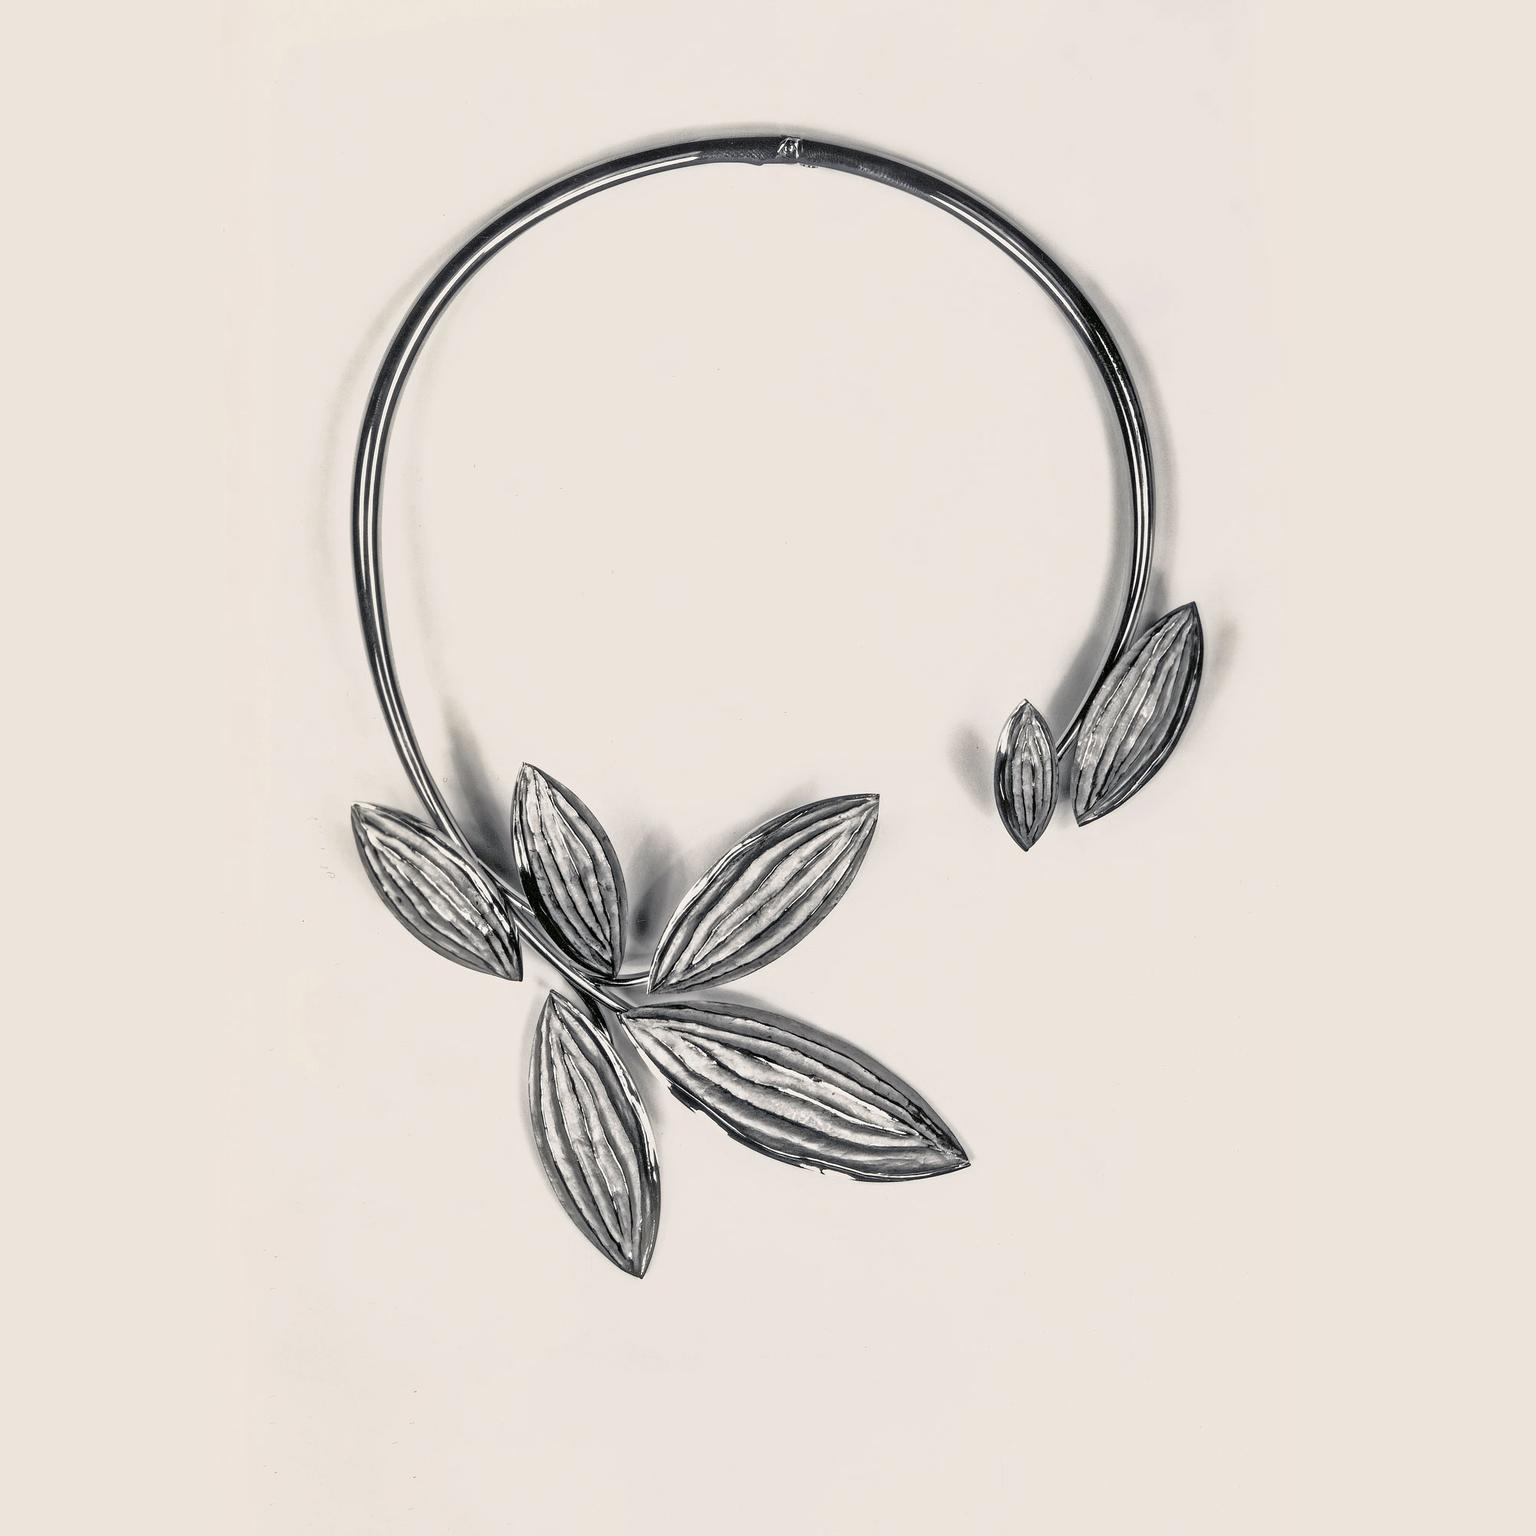 Chaumet stylised leaves necklace